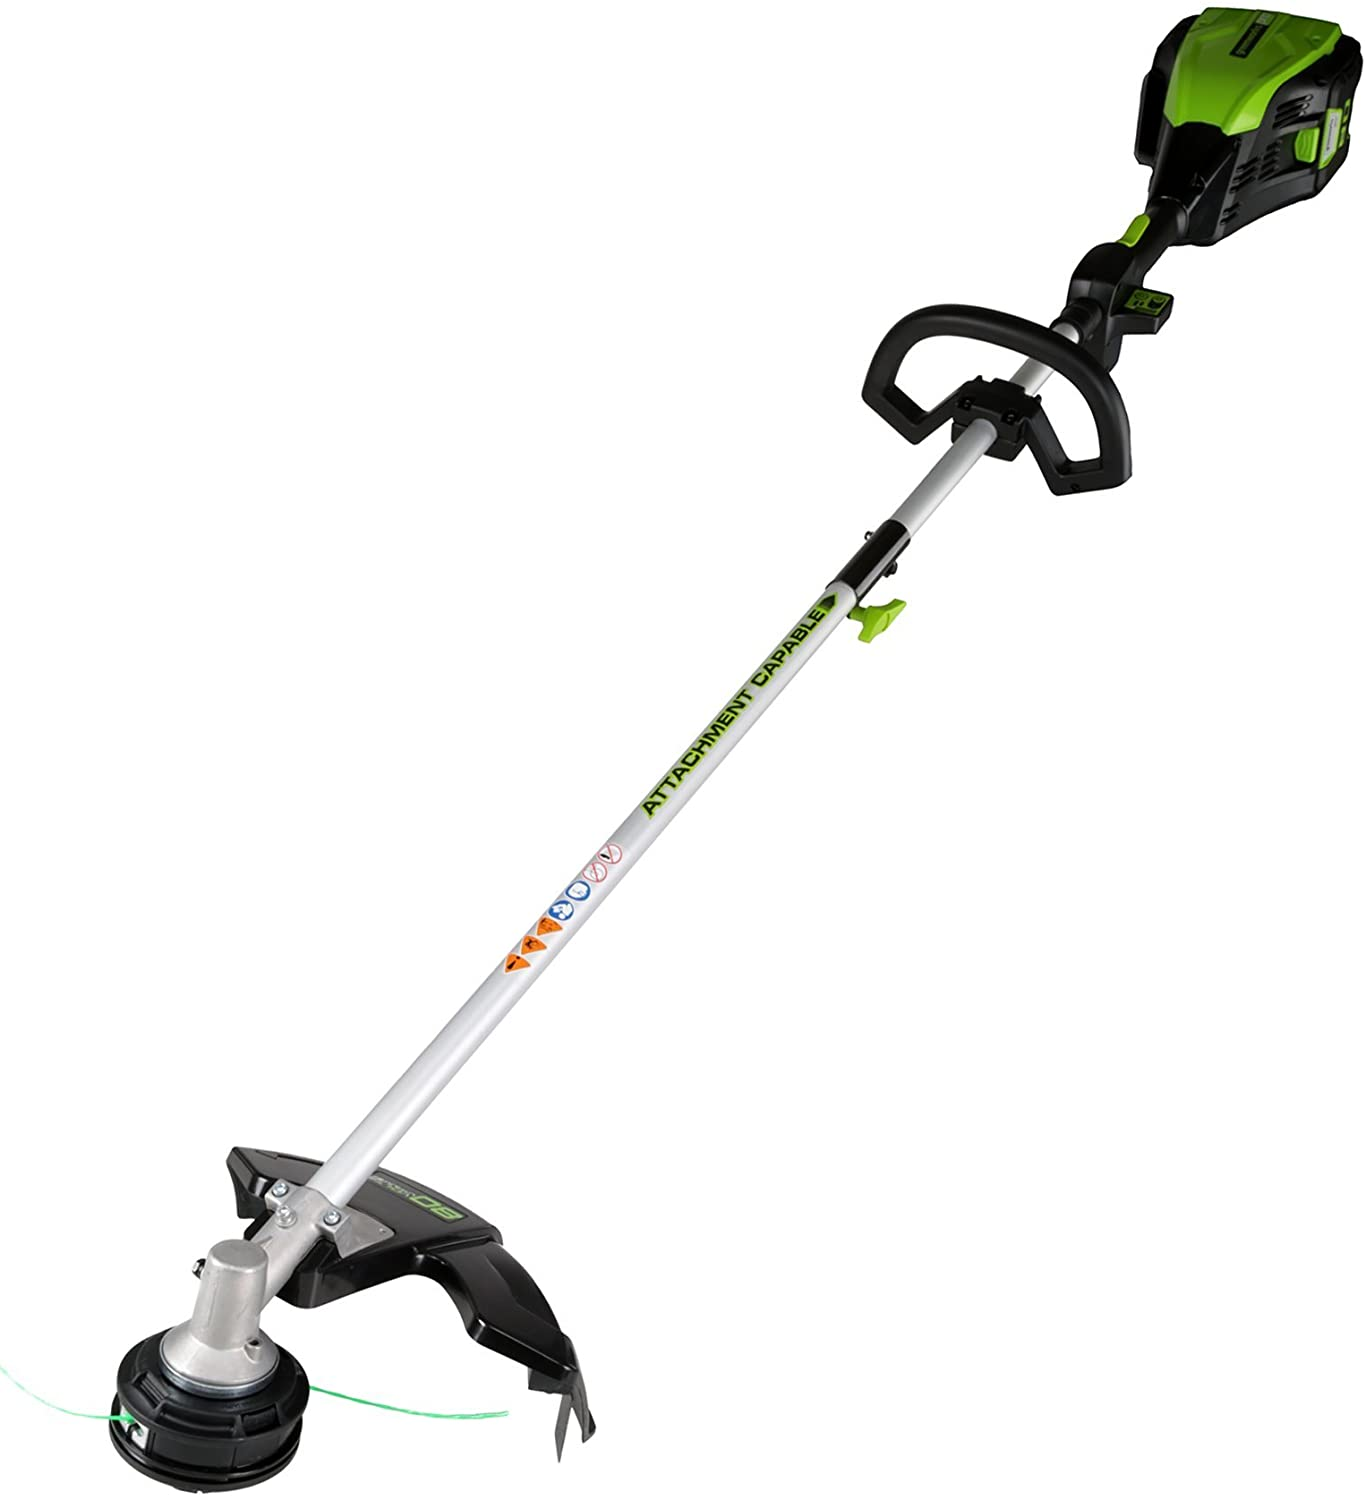 Greenworks PRO 16-Inch 80V Cordless String Trimmer Attachment Capable , Battery Not Included GST80320